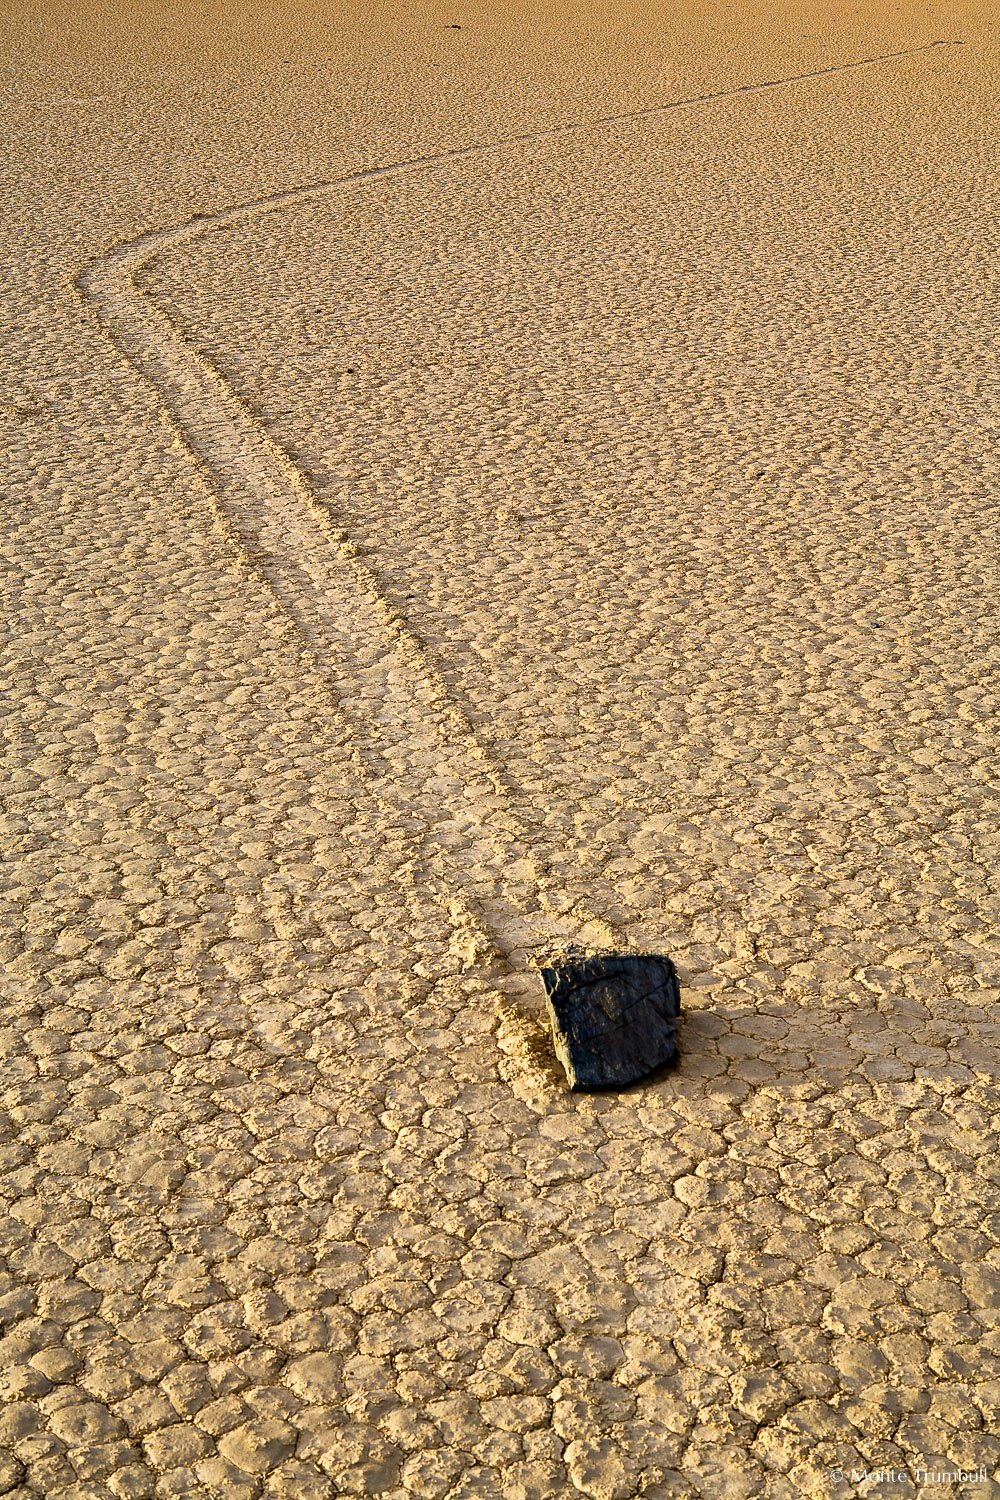 MT-20080202-163501-California-Death-Valley-National-Park-Racetrack-rock-with-track.jpg